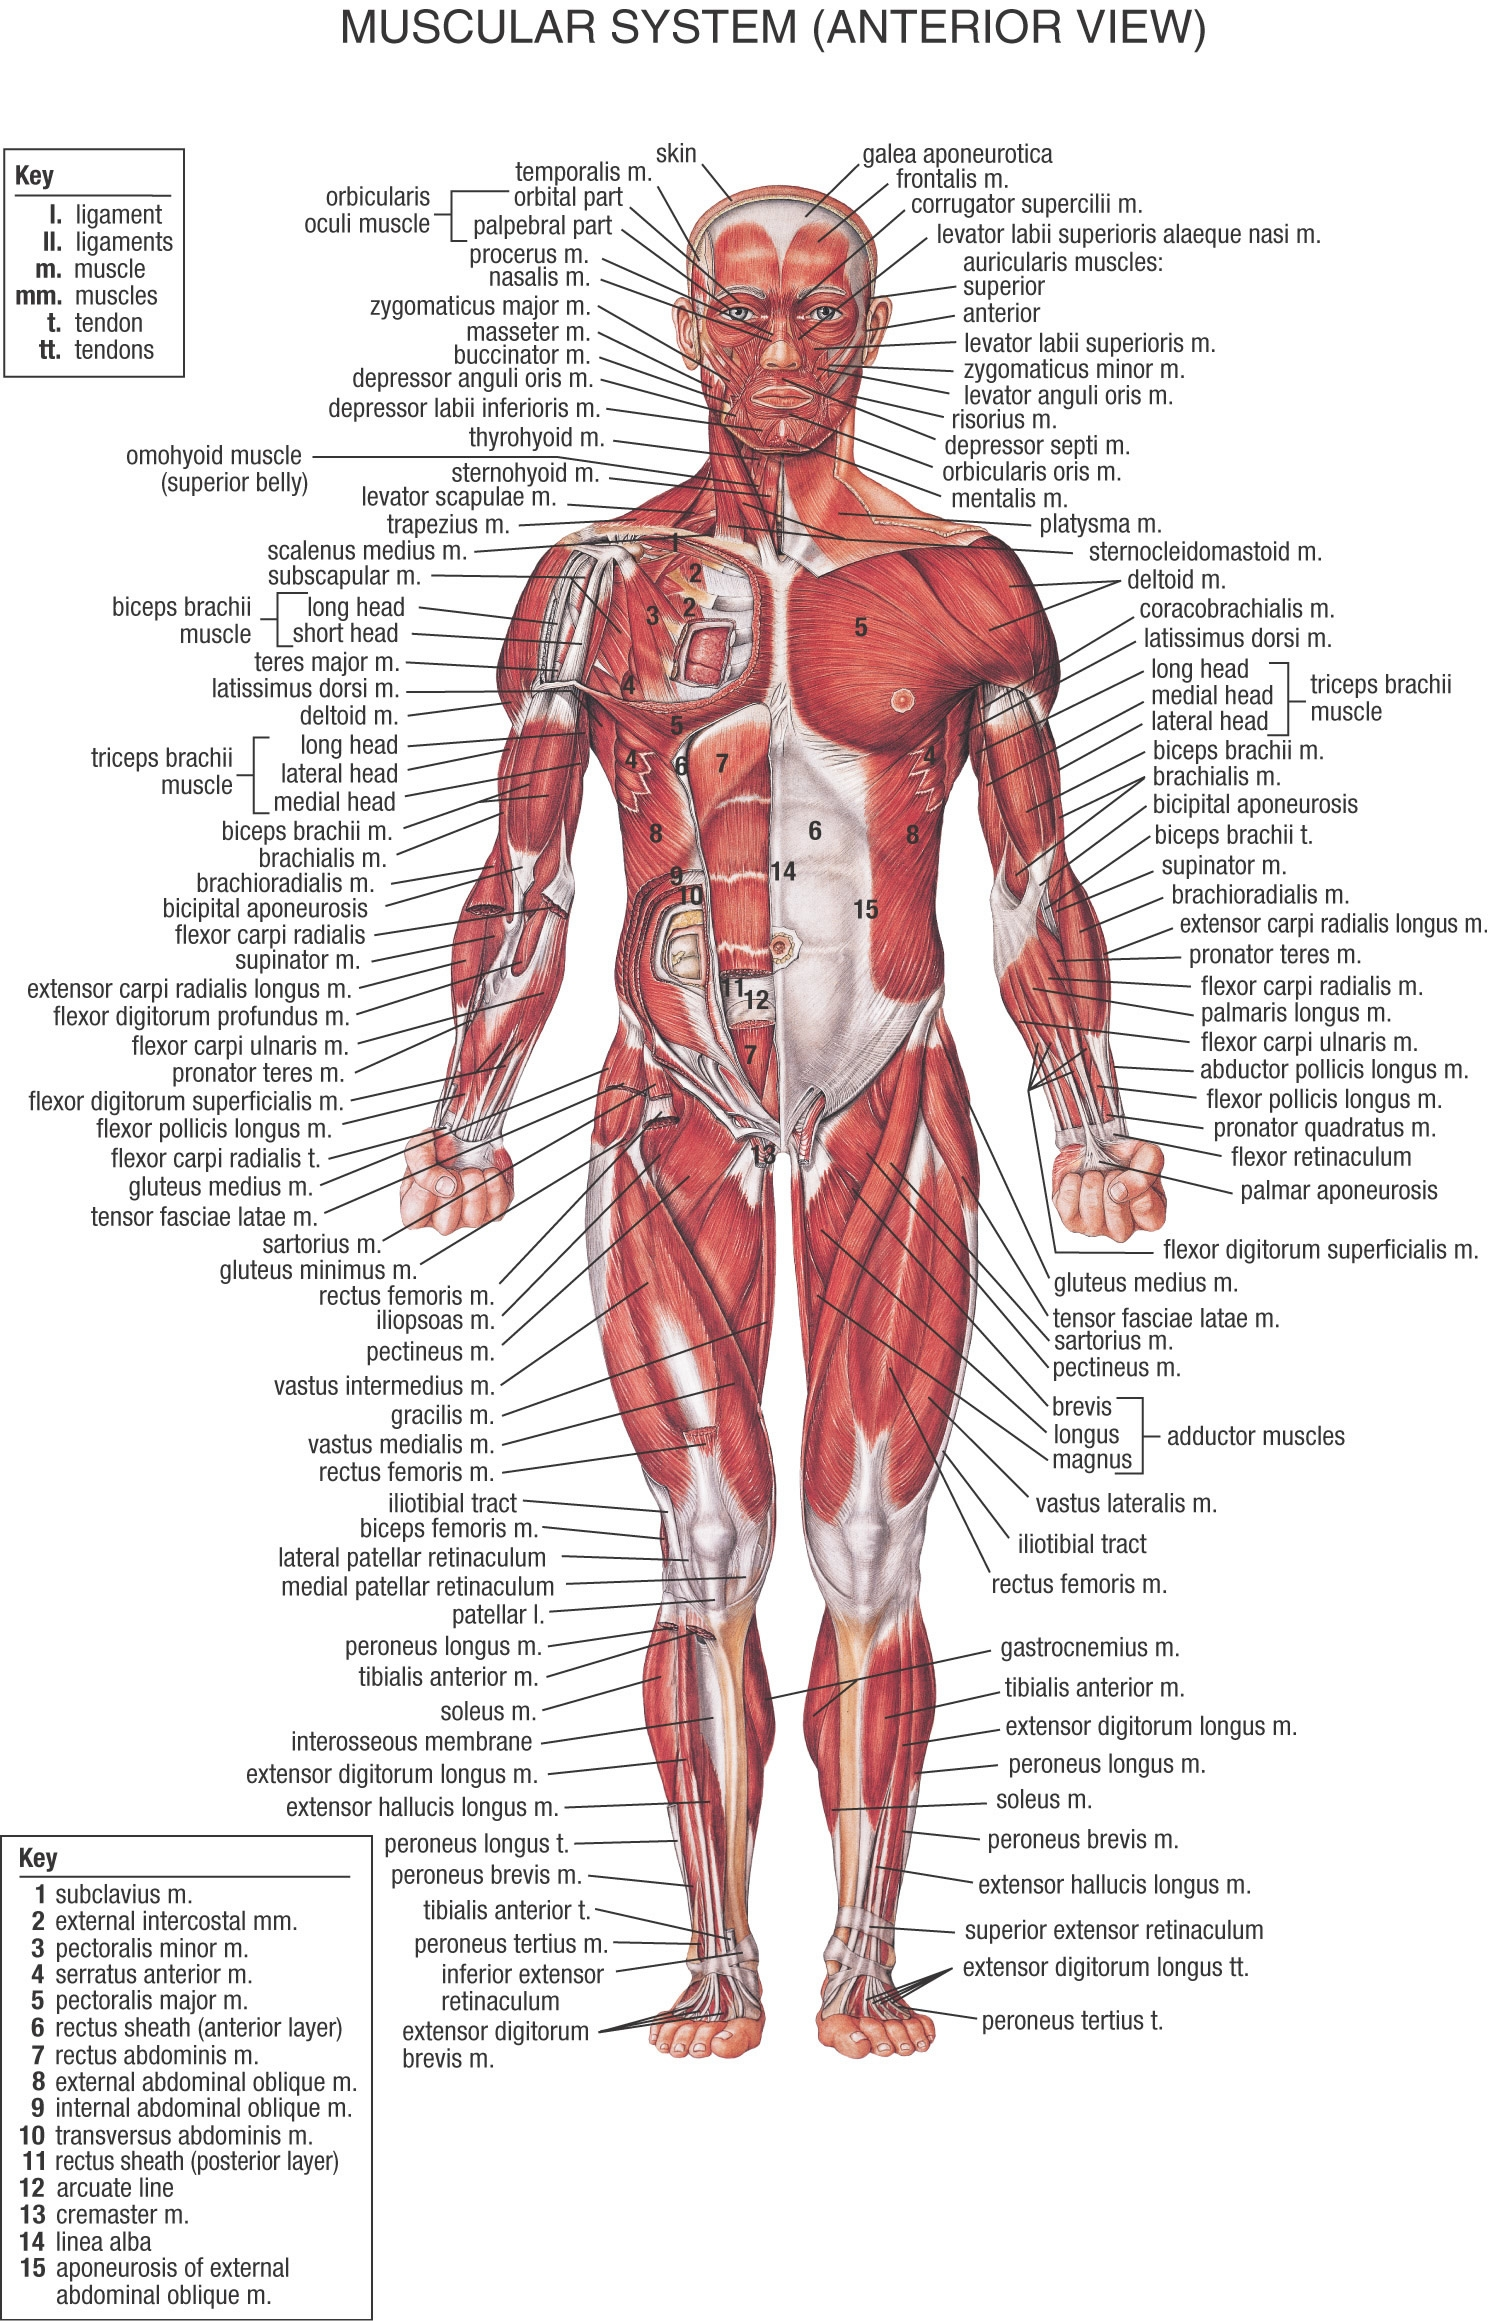 Human Body Anatomical Chart Muscular System Poster Home Decoration ...